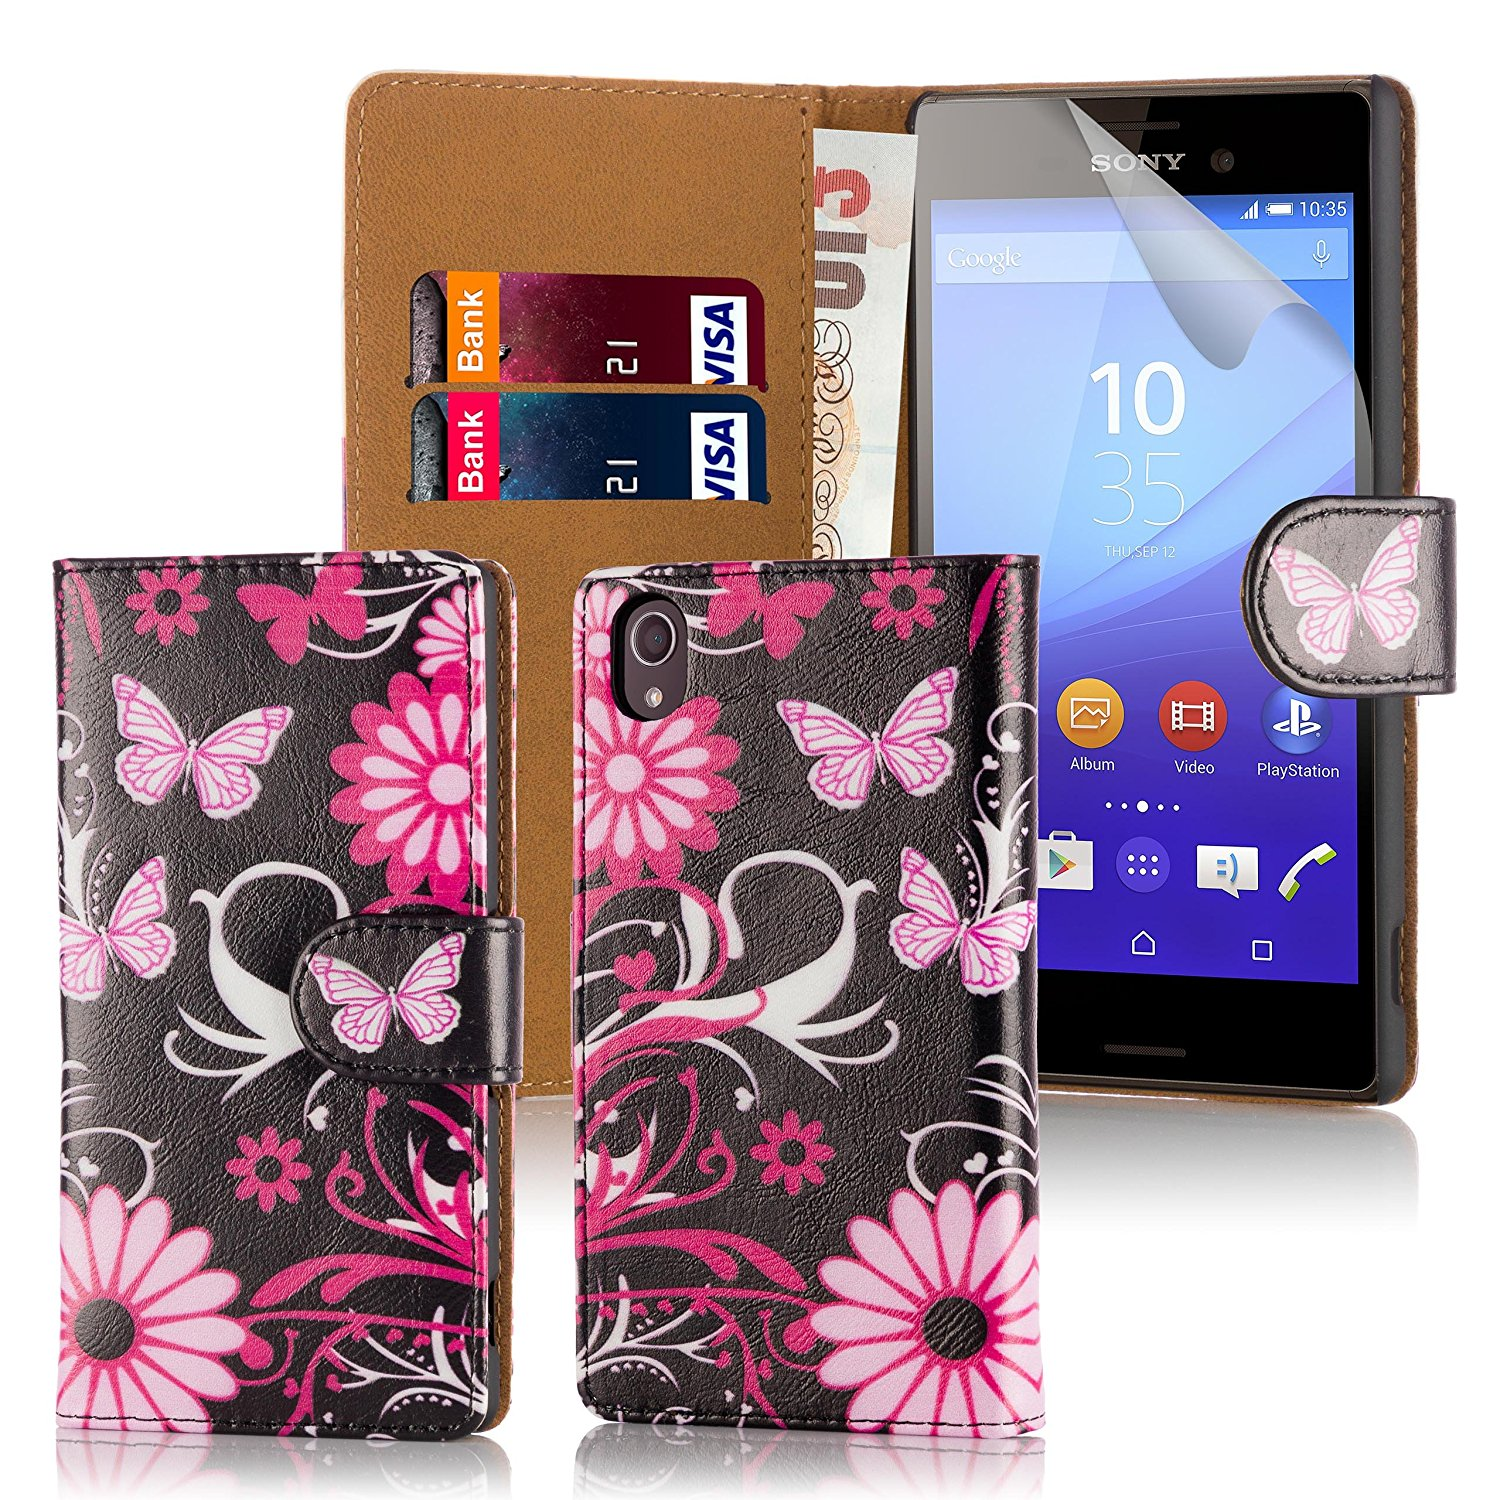 32nd® Design book wallet PU leather case cover for Sony Xperia M4 Aqua mobile phone - Gerbera